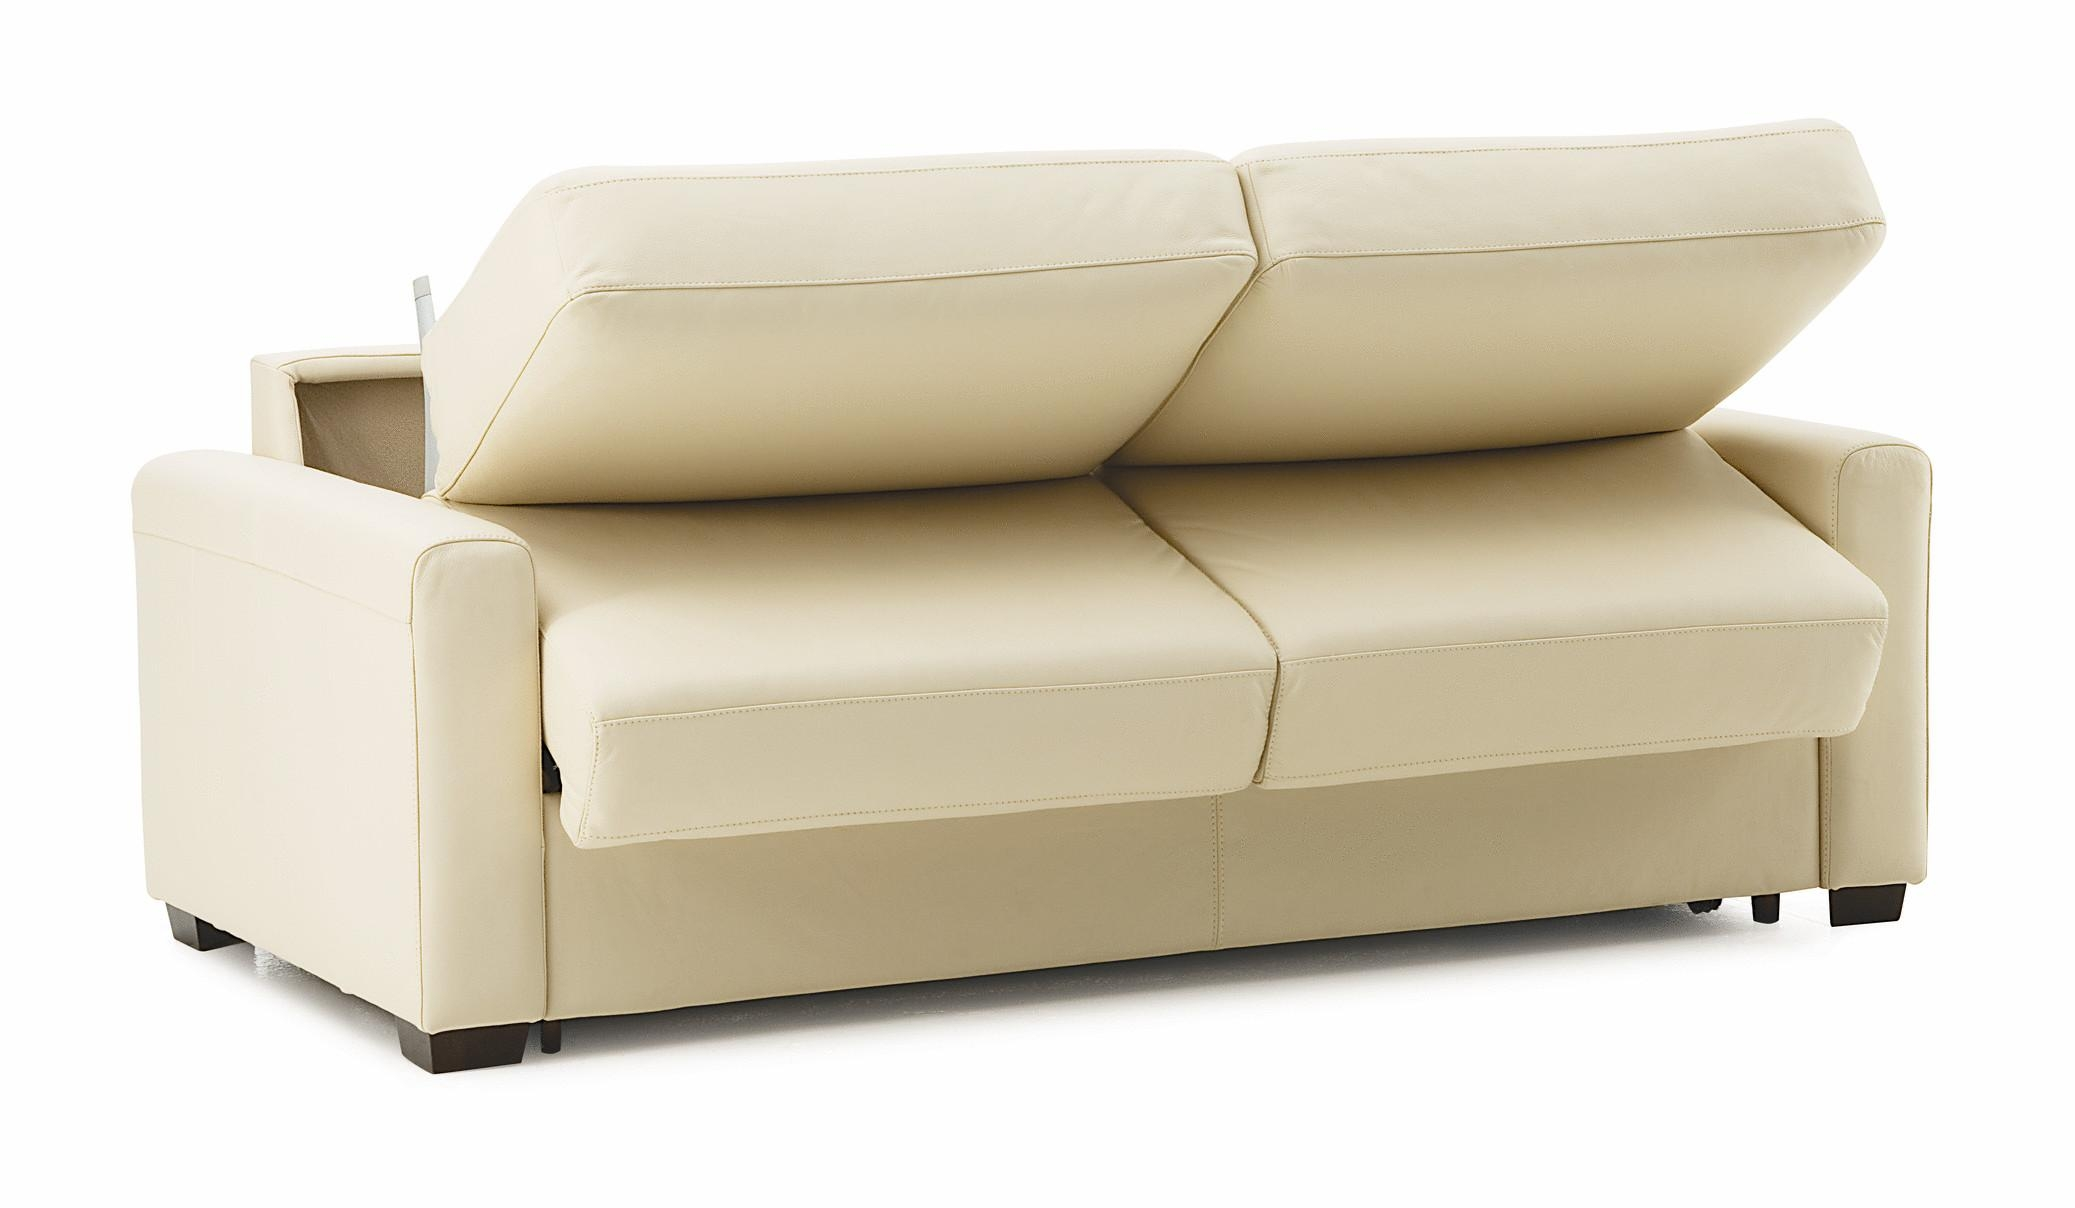 High End Sleeper Sofa Intended For Sleeper Sofas (View 17 of 20)